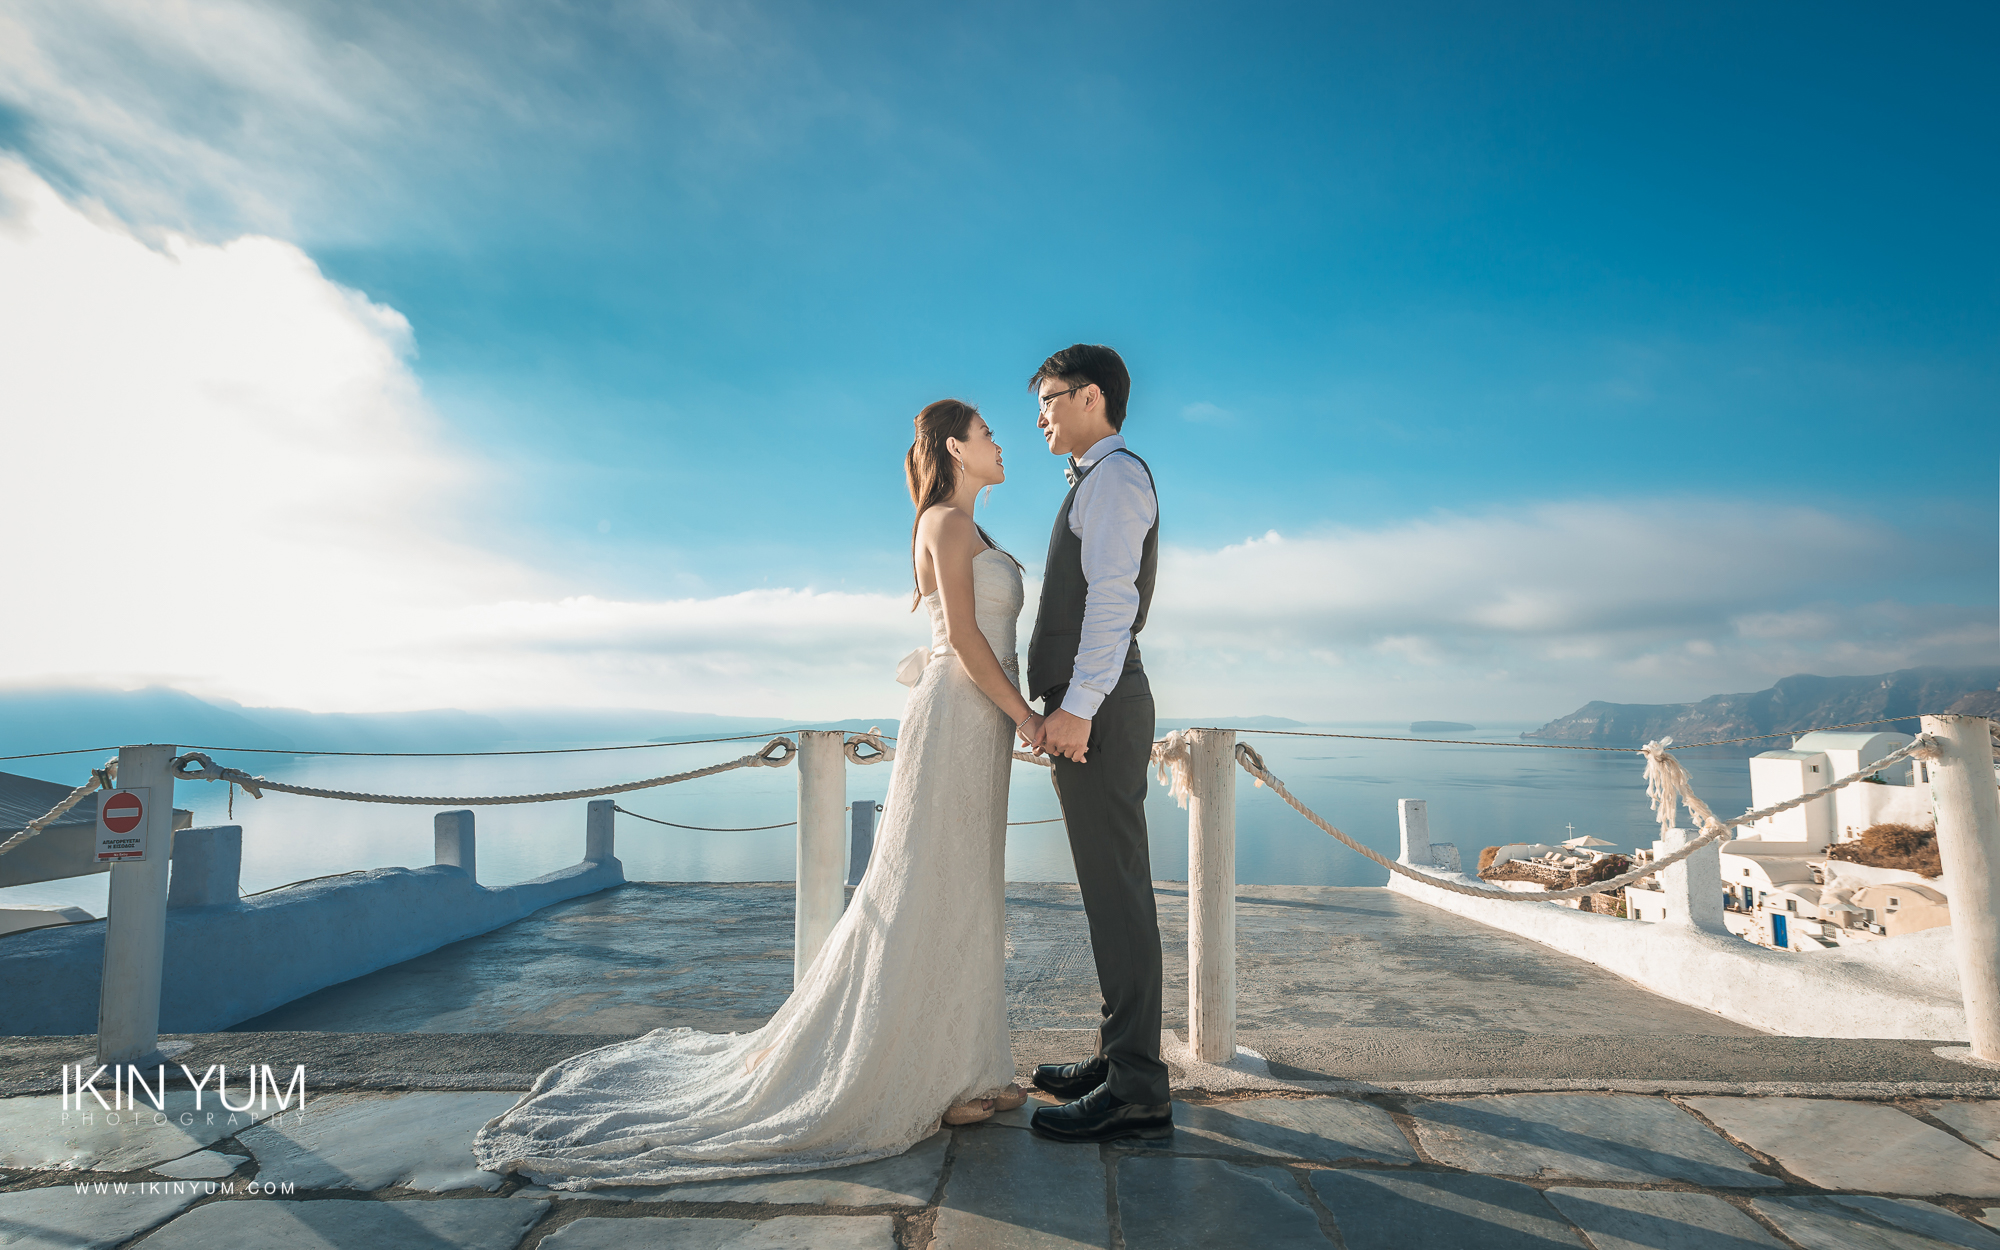 Michelle & Kevin Pre-Wedding Shoot - Ikin Yum Photography-0142.jpg